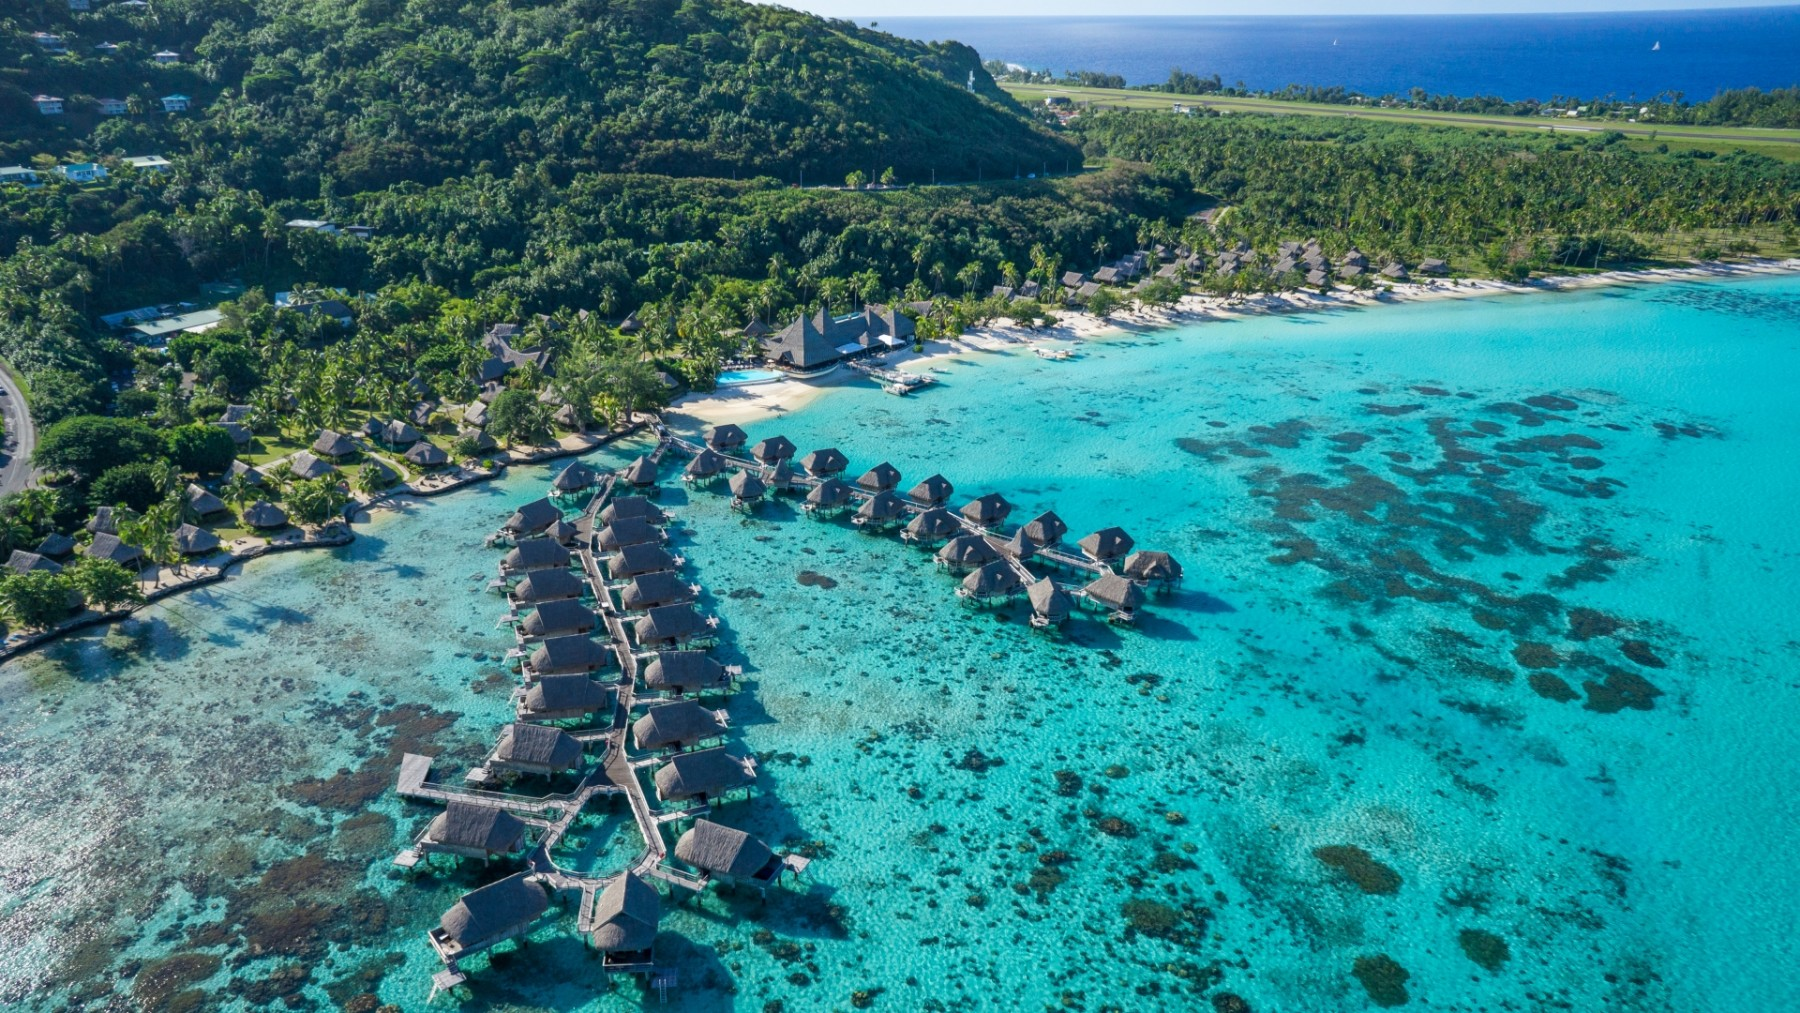 Sofitel Moorea Ia Ora Beach Resort Live The French Way